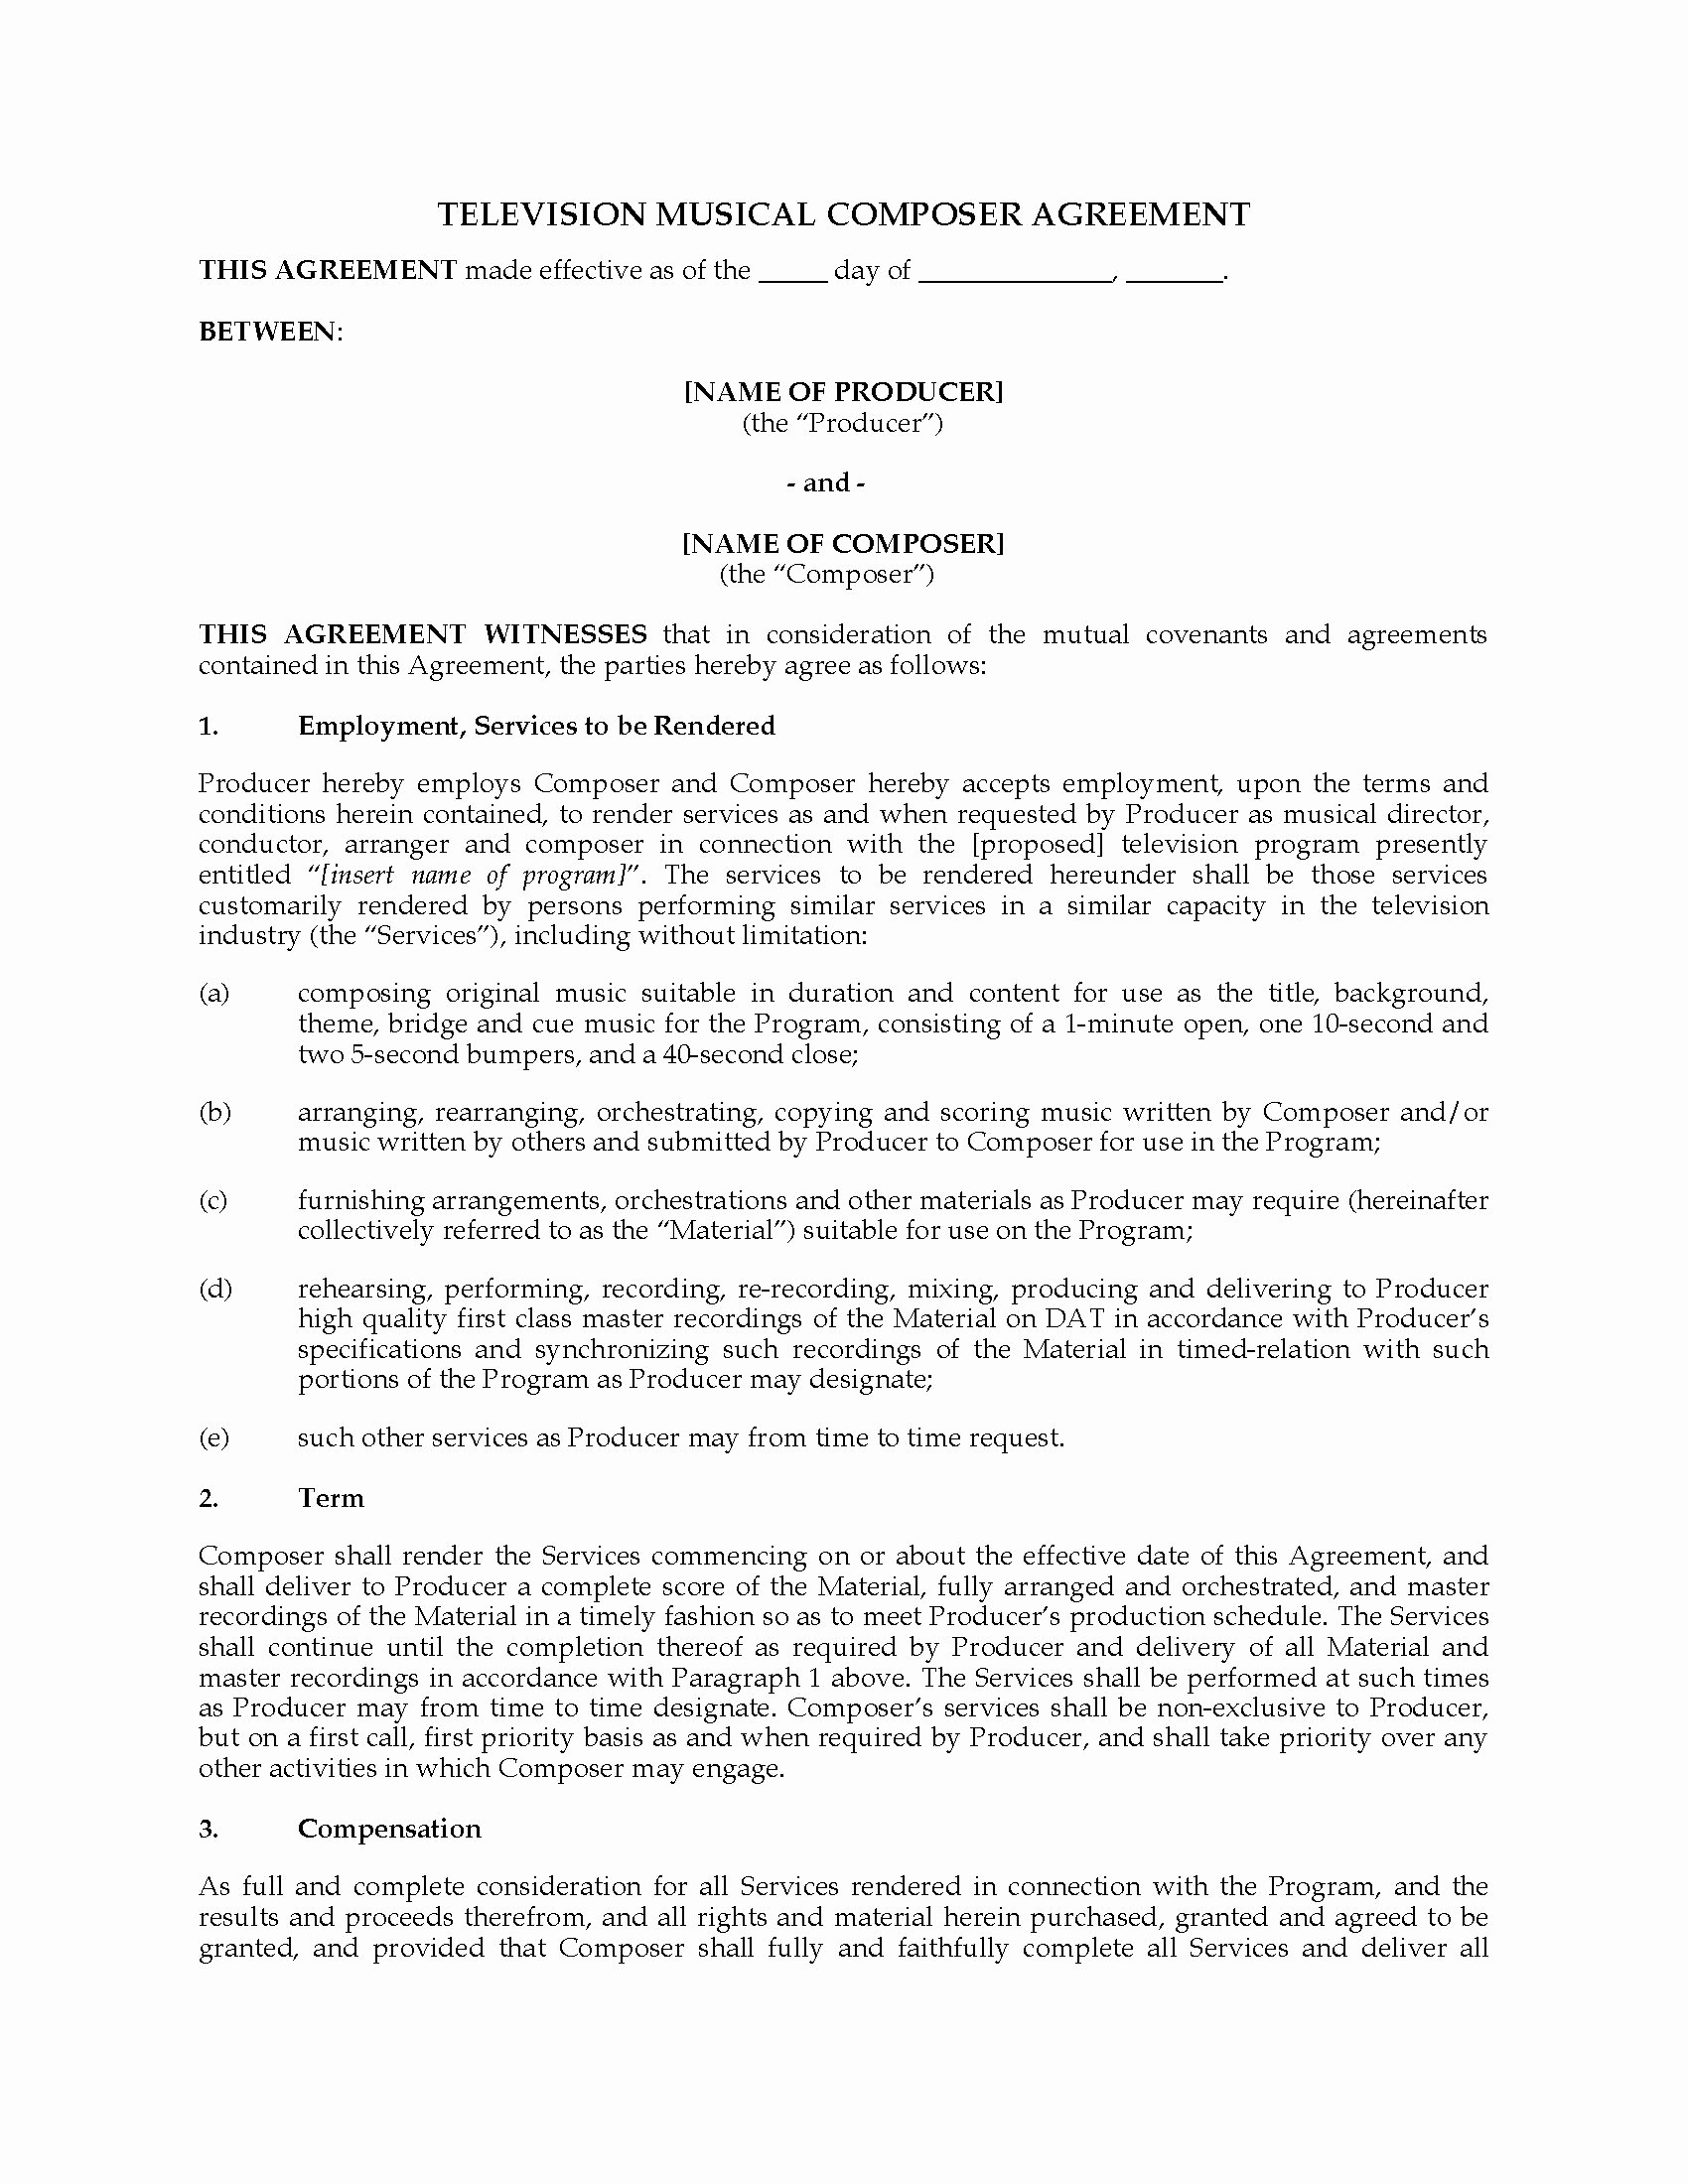 Music Producer Agreement Template New Television Music Poser Agreement